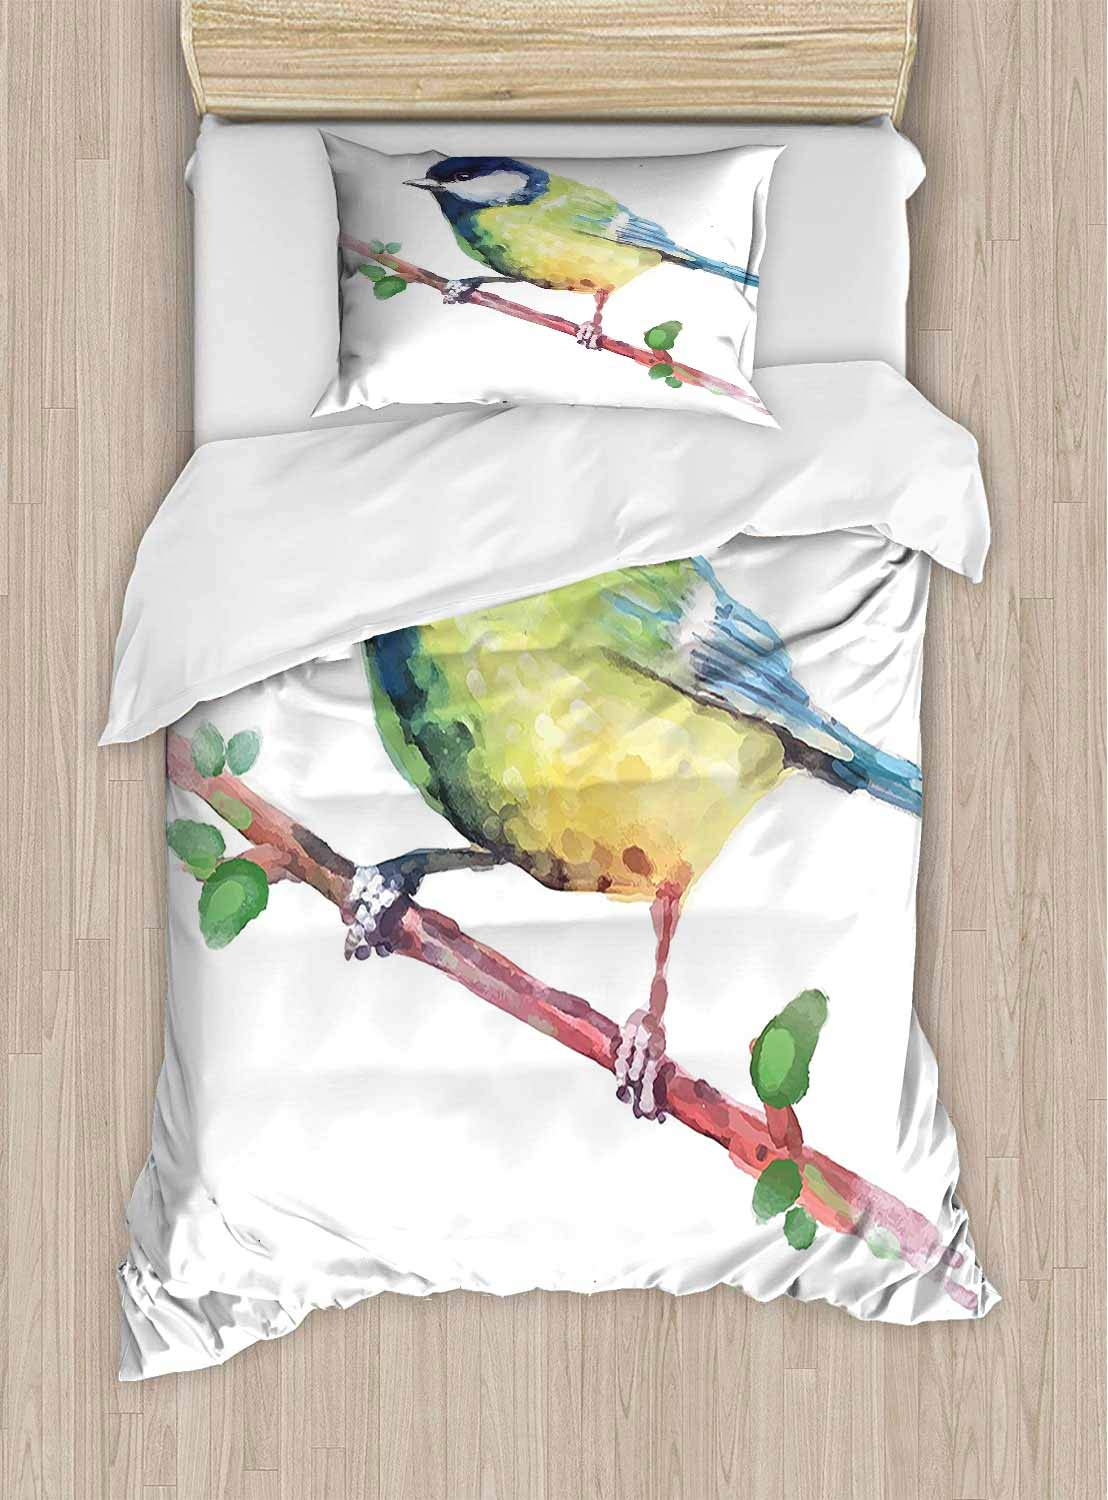 PRUNUSHOME Extra Soft Luxury Hotel Sheets Bird Tree Branch istic Wildlife Image Navy Blue and Light Green Long Durable X-Long Twin